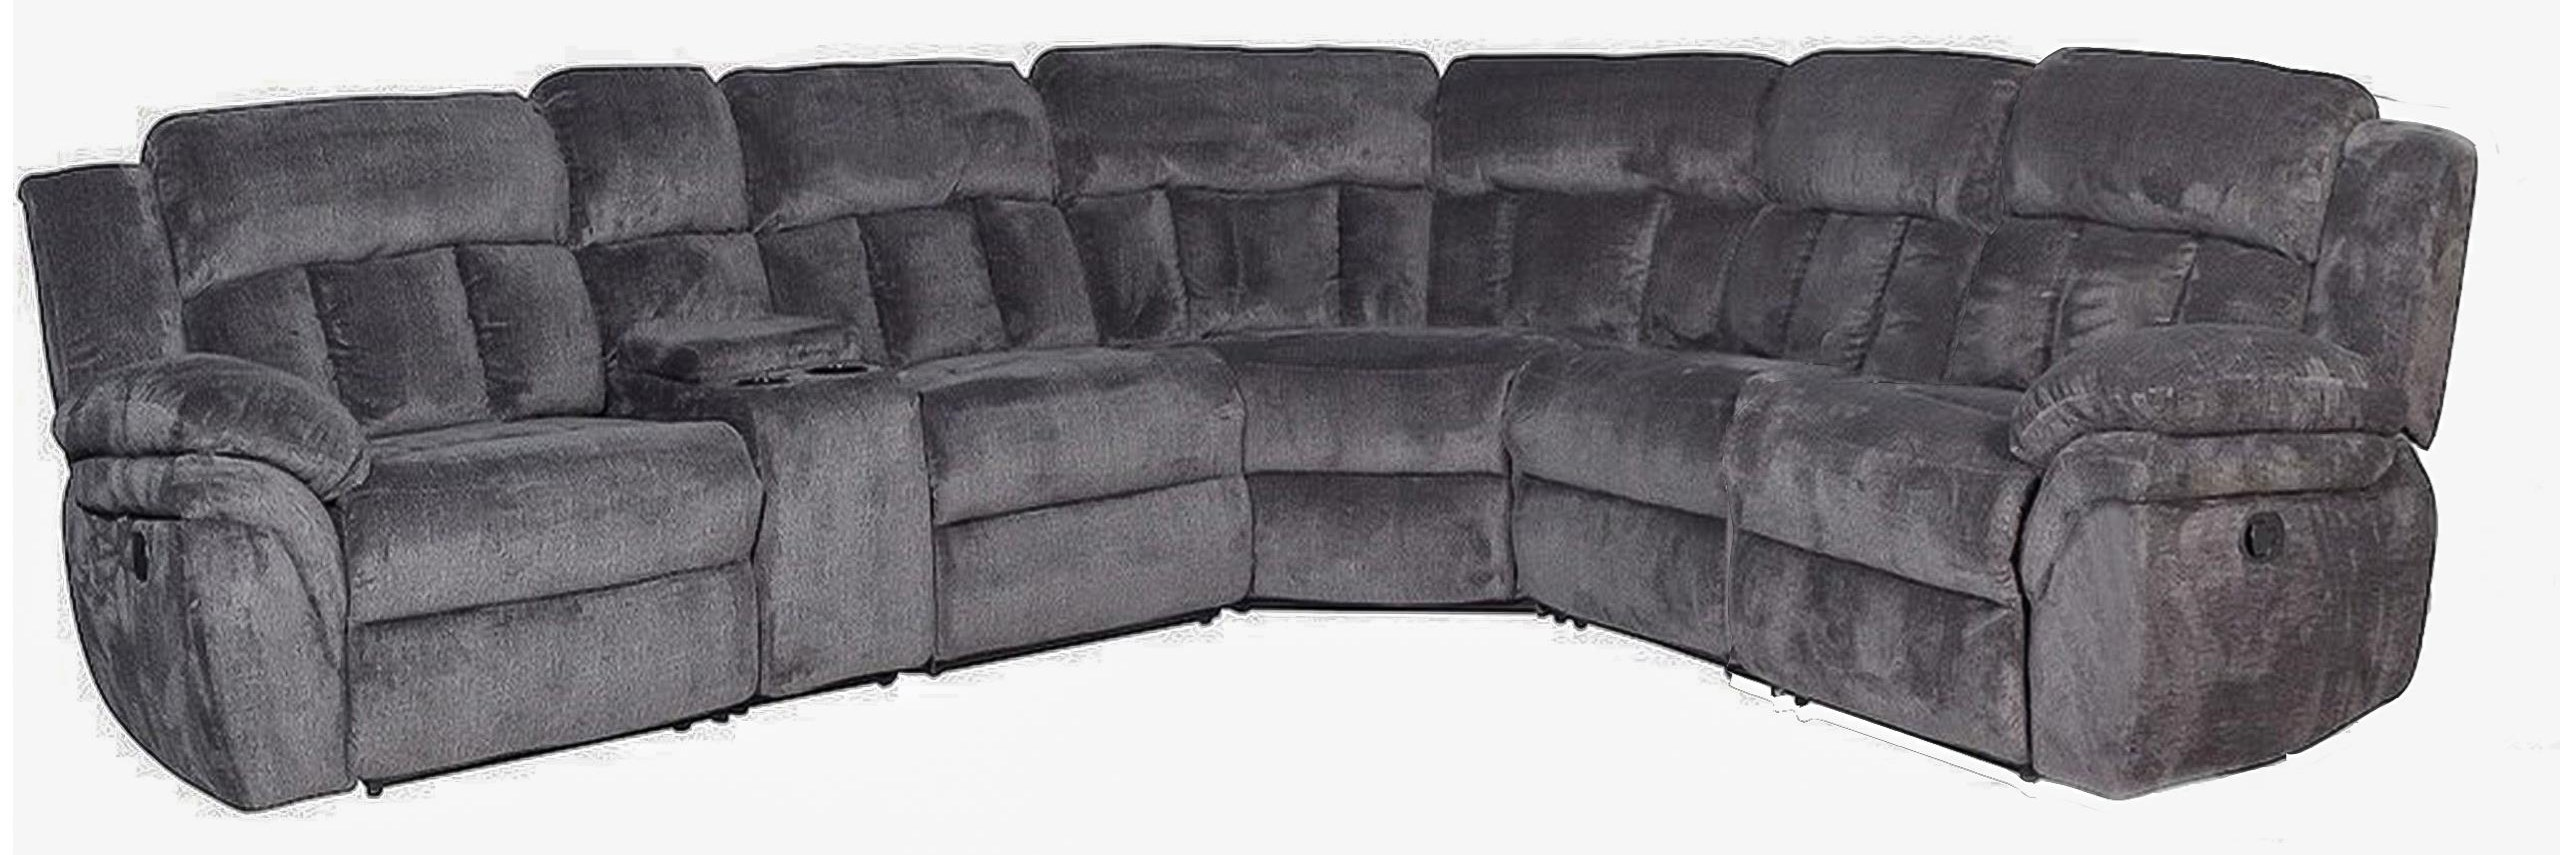 mccobb 4 seat reclining sectional sofa with 1 cup holder and storage by klaussner international at beck s furniture